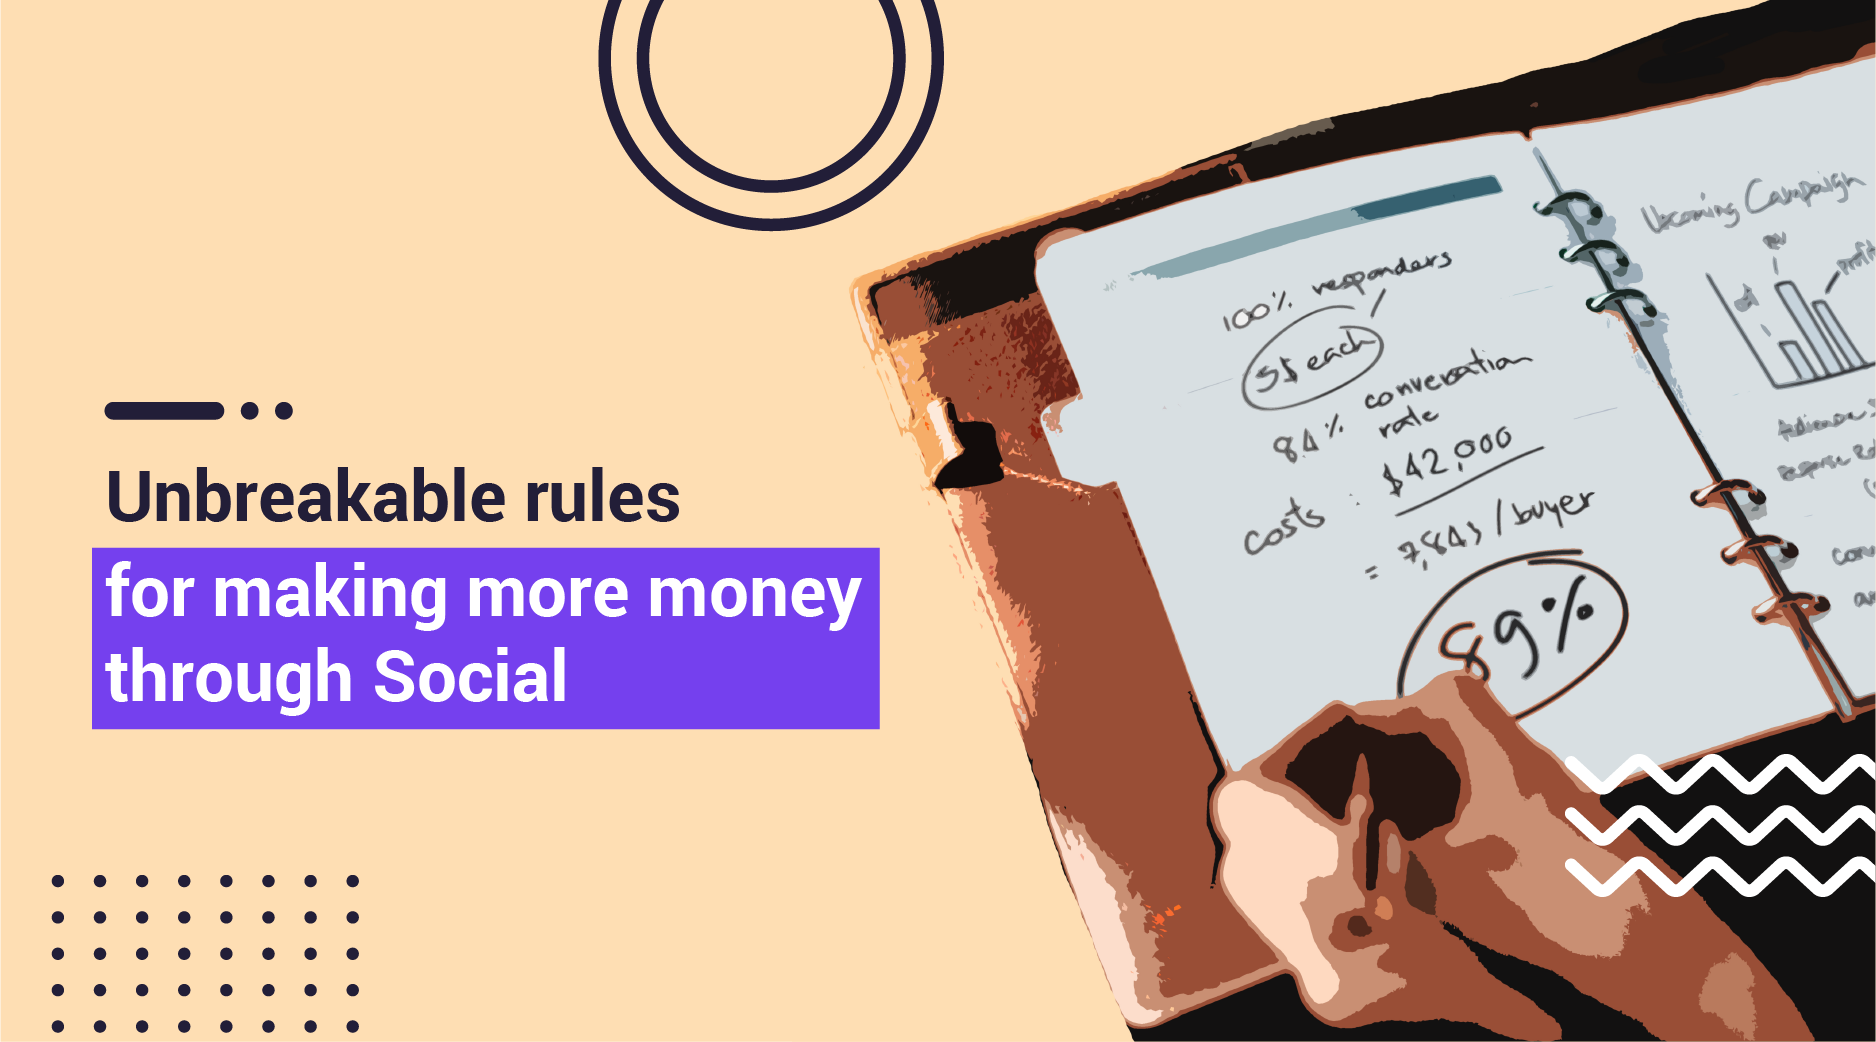 5 Unbreakable Rules For Making More Money Through Social